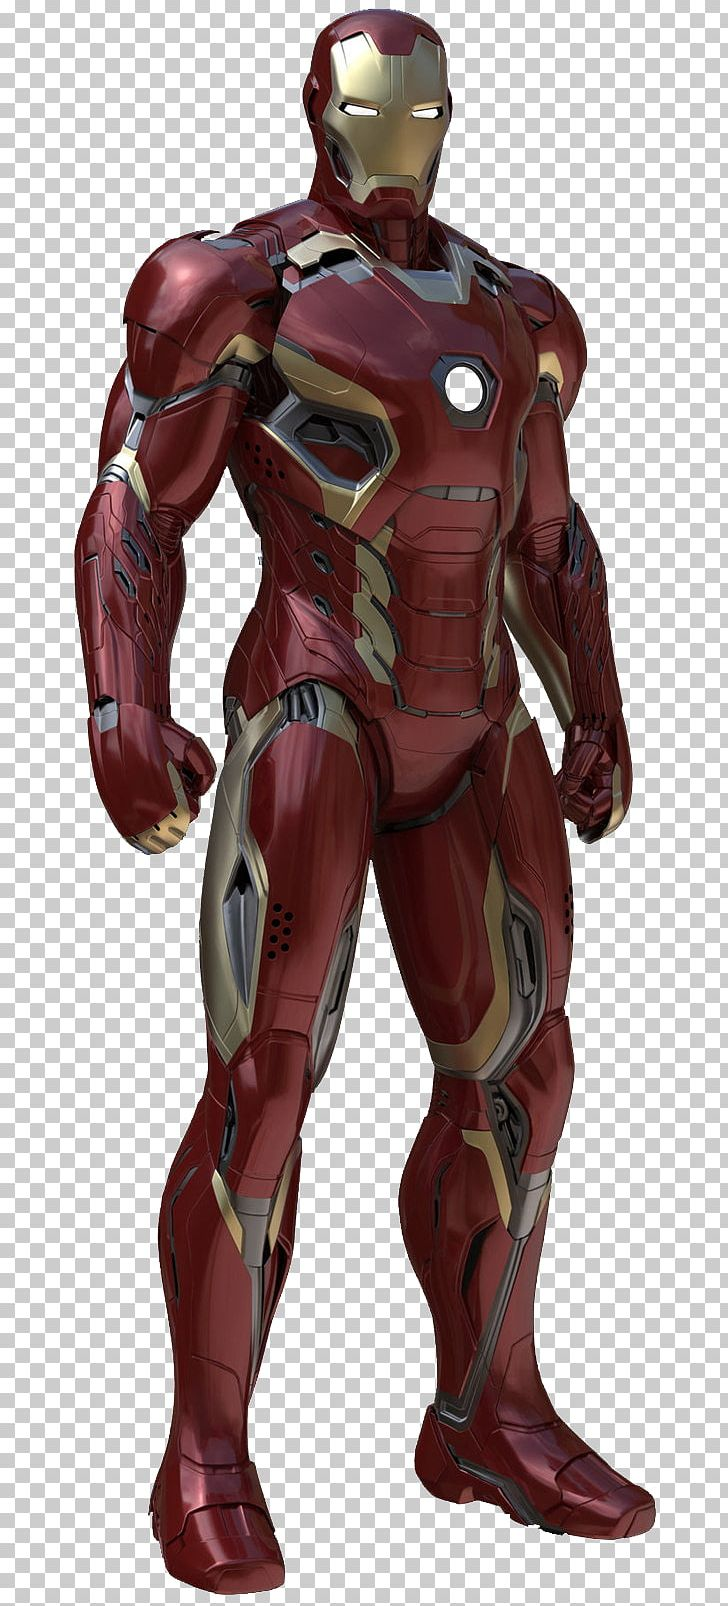 Iron Man Edwin Jarvis Howard Stark Extremis Vision PNG, Clipart, Body, Business Man, Cartoon, Cartoon Characters, Comics Free PNG Download